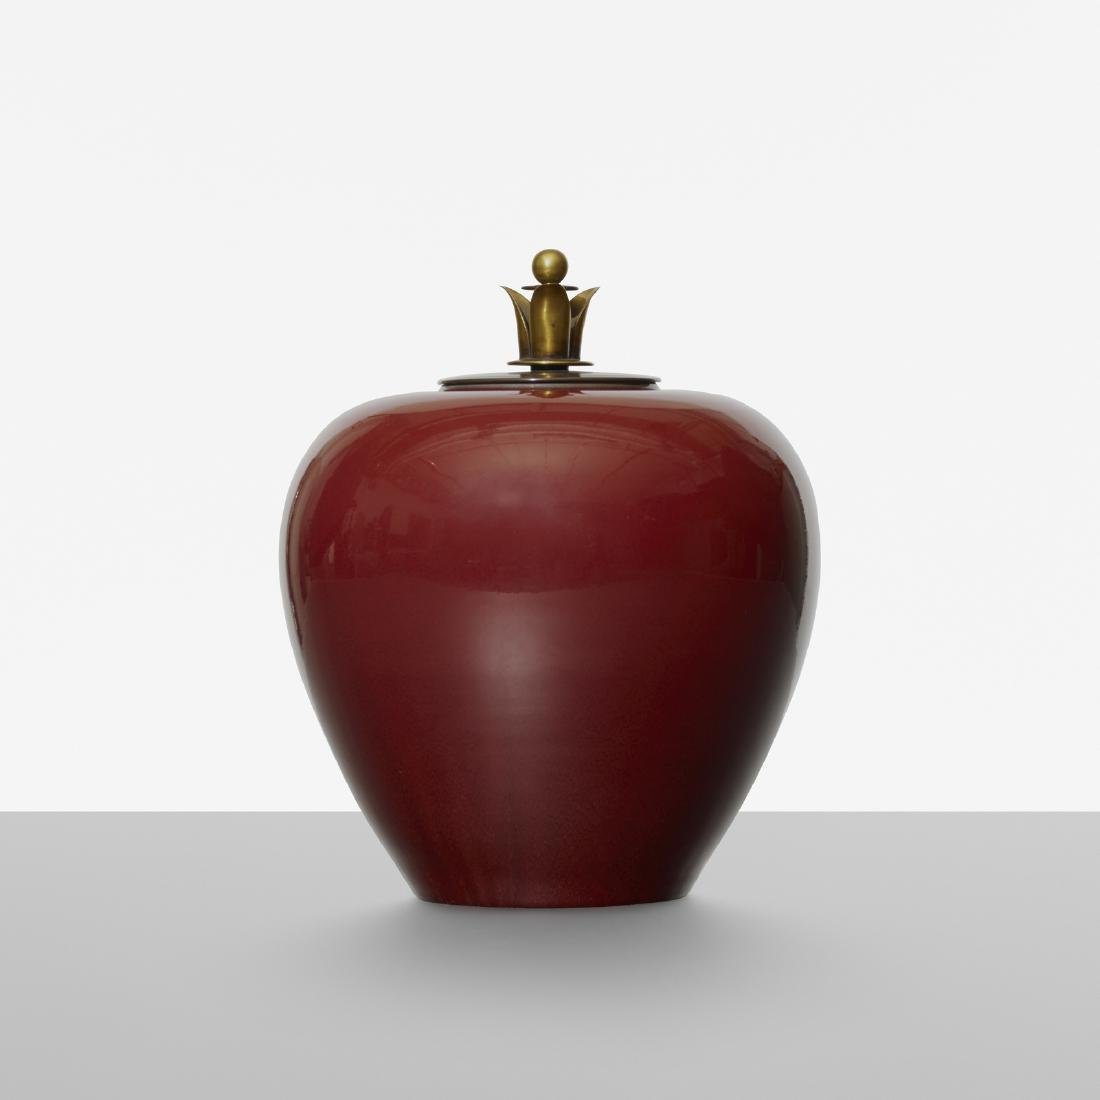 Carl Halier, lidded vessel